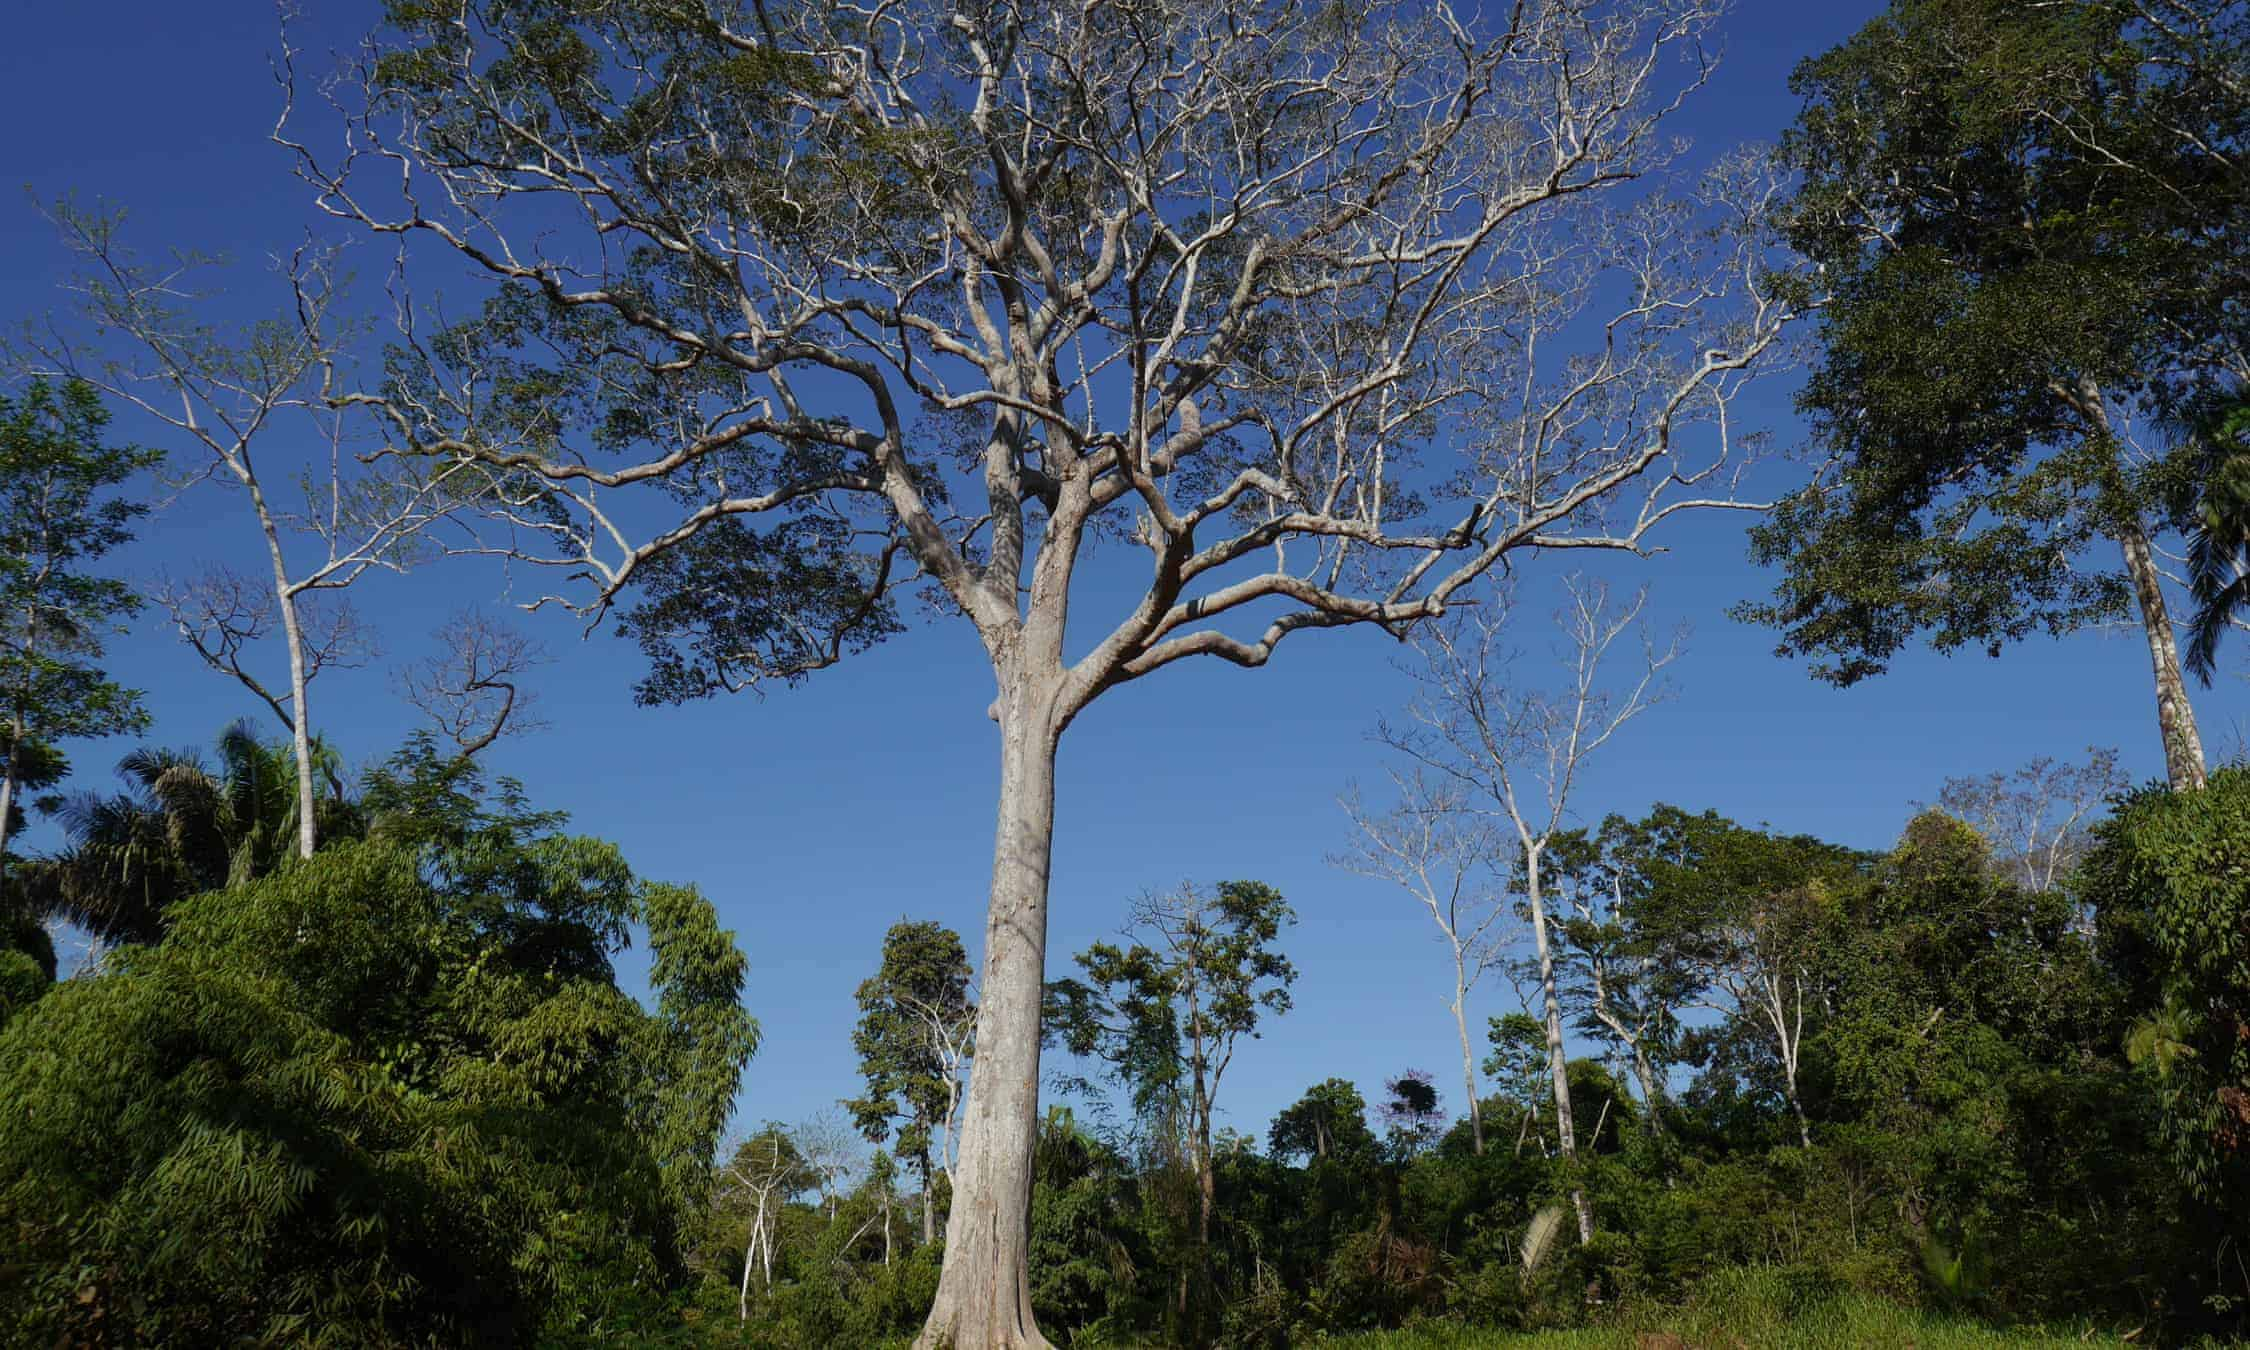 Reforesting the Amazon, a Live Interview with the BBC World Service